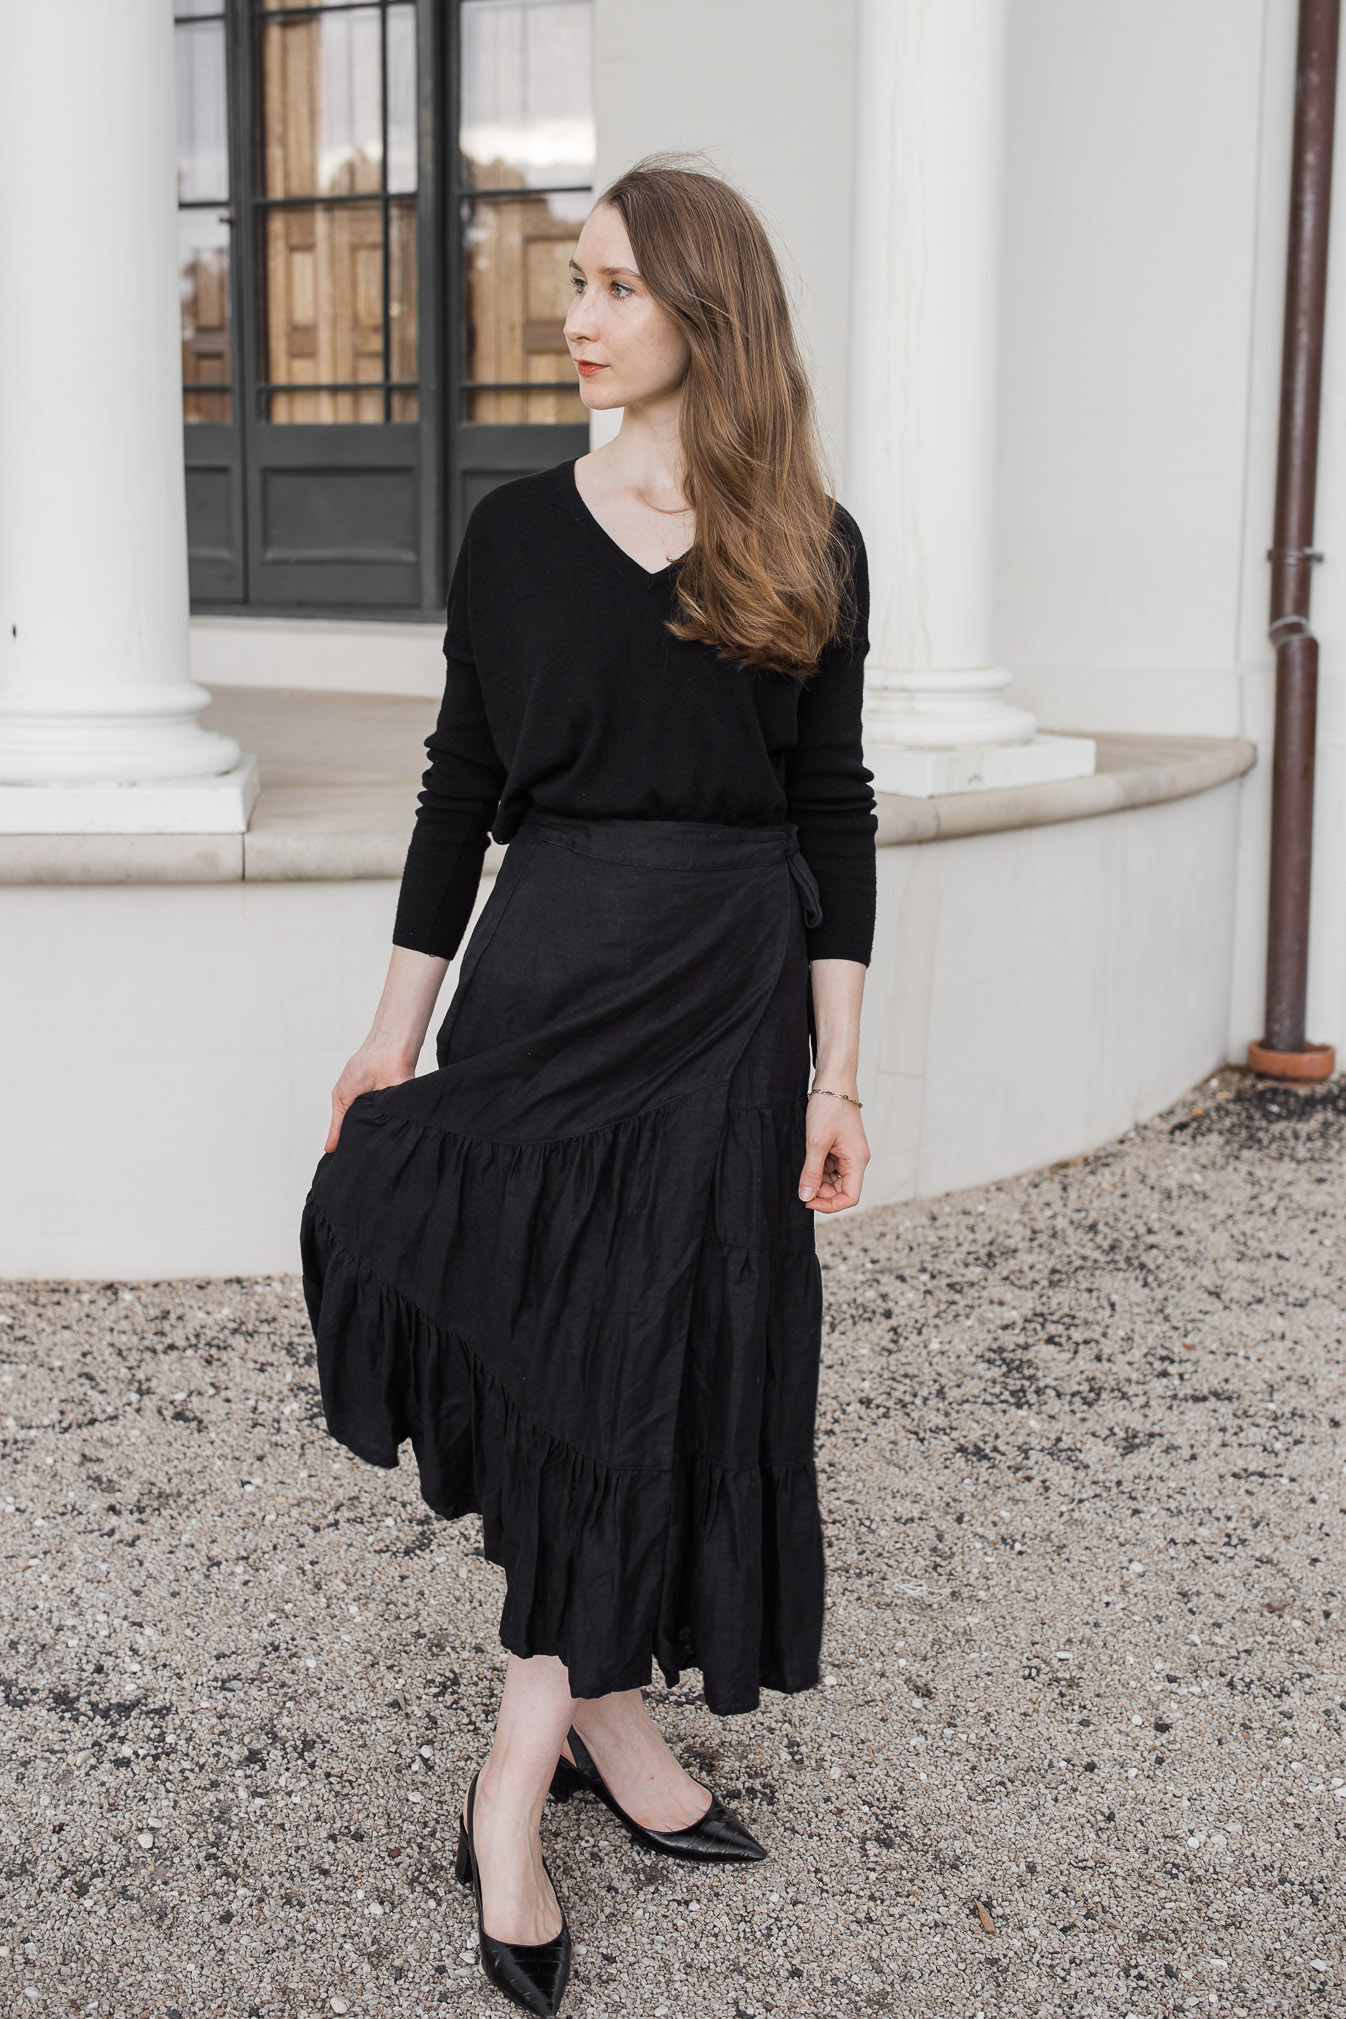 Country Road, Country road black tiered linen maxi skirt, linen skirt, tiered skirt, minimalist outfit, cross-seasonal outfit